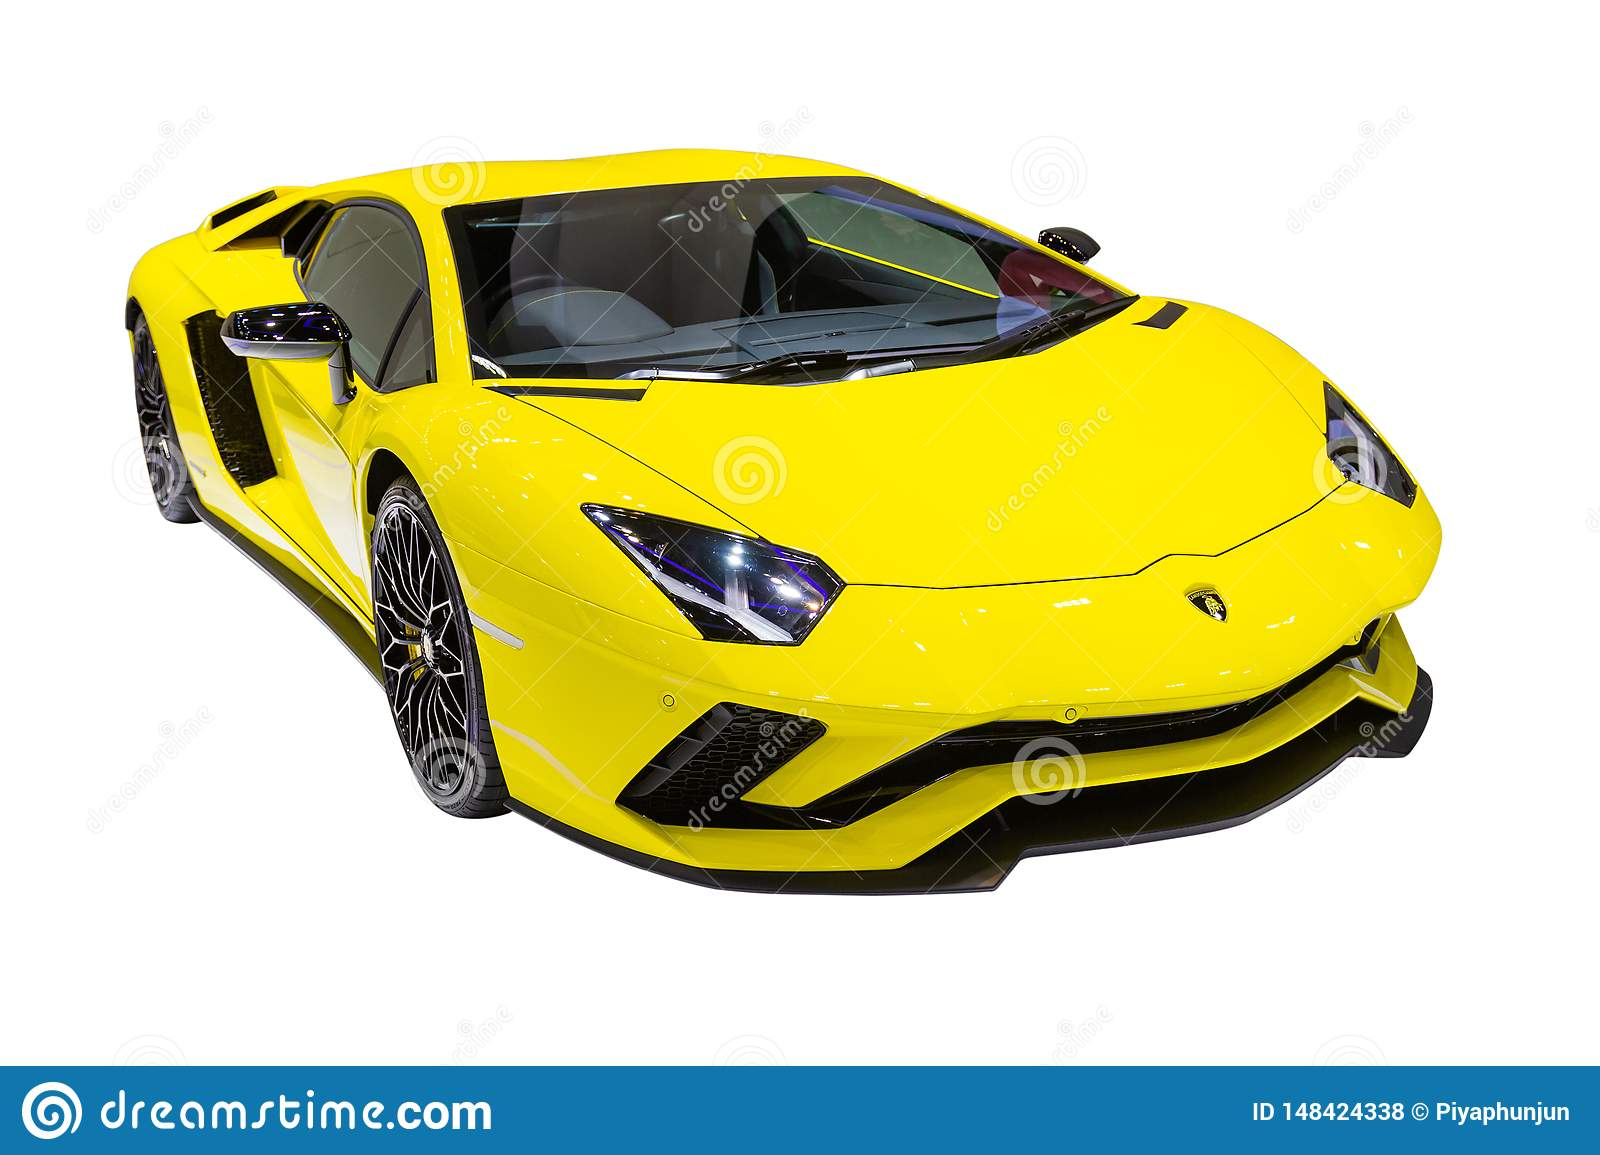 404 Lamborghini White Background Photos Free Royalty Free Stock Photos From Dreamstime